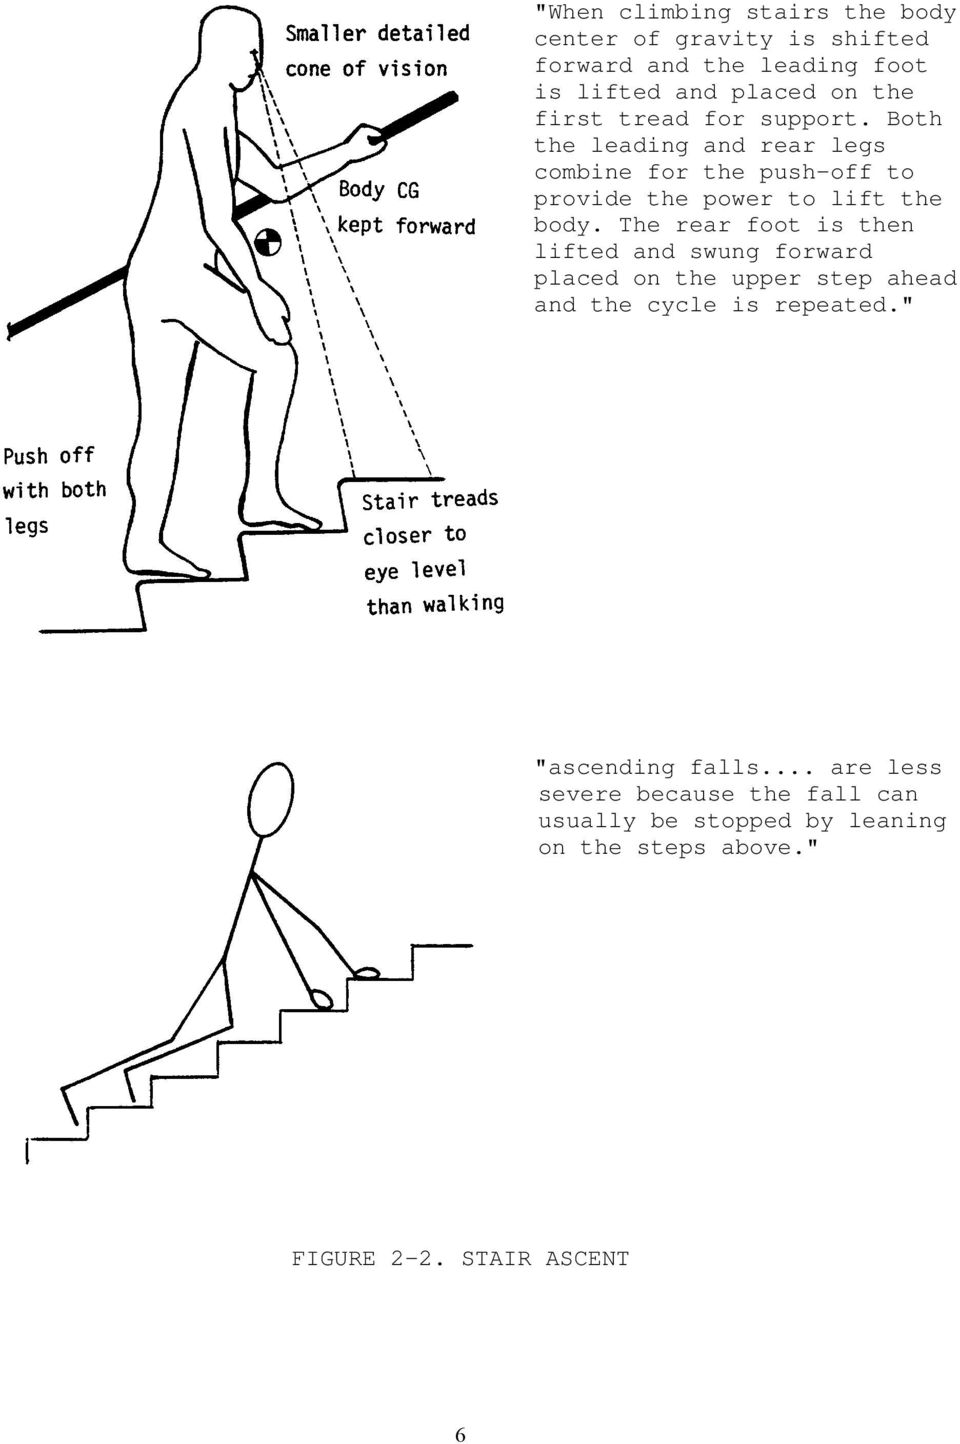 The rear foot is then lifted and swung forward placed on the upper step ahead and the cycle is repeated.